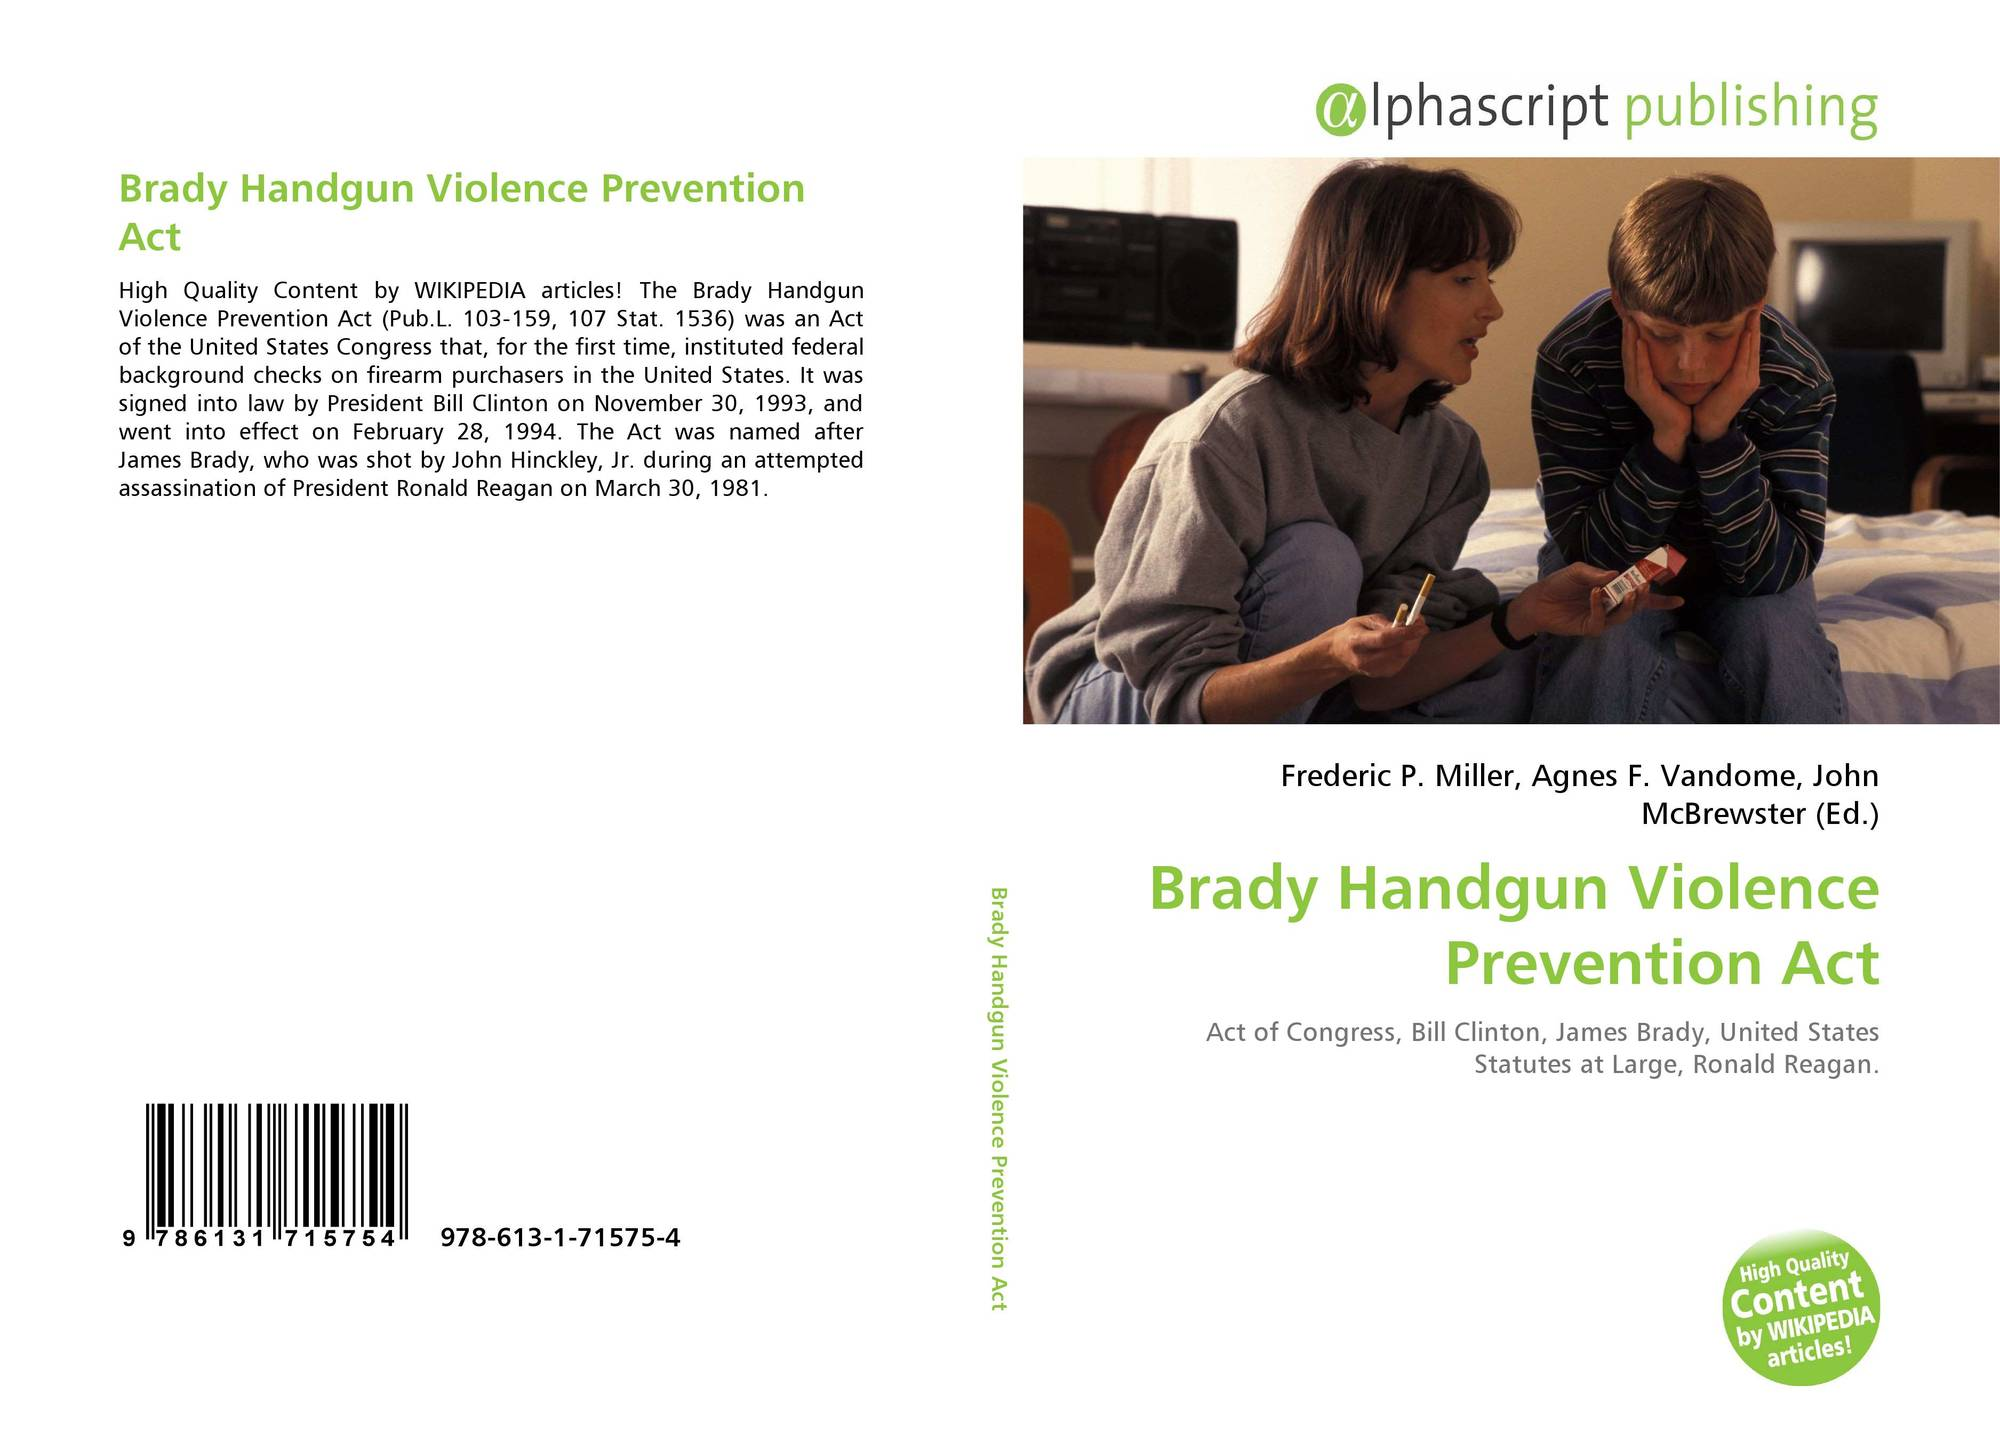 the brady handgun violence prevention act The brady handgun violence prevention act (template:usstatute), often referred to as the brady act and commonly called the brady bill, is an act of the united states congress that made background checks on firearm purchasers in the united states required and created a five-day waiting period on purchases.